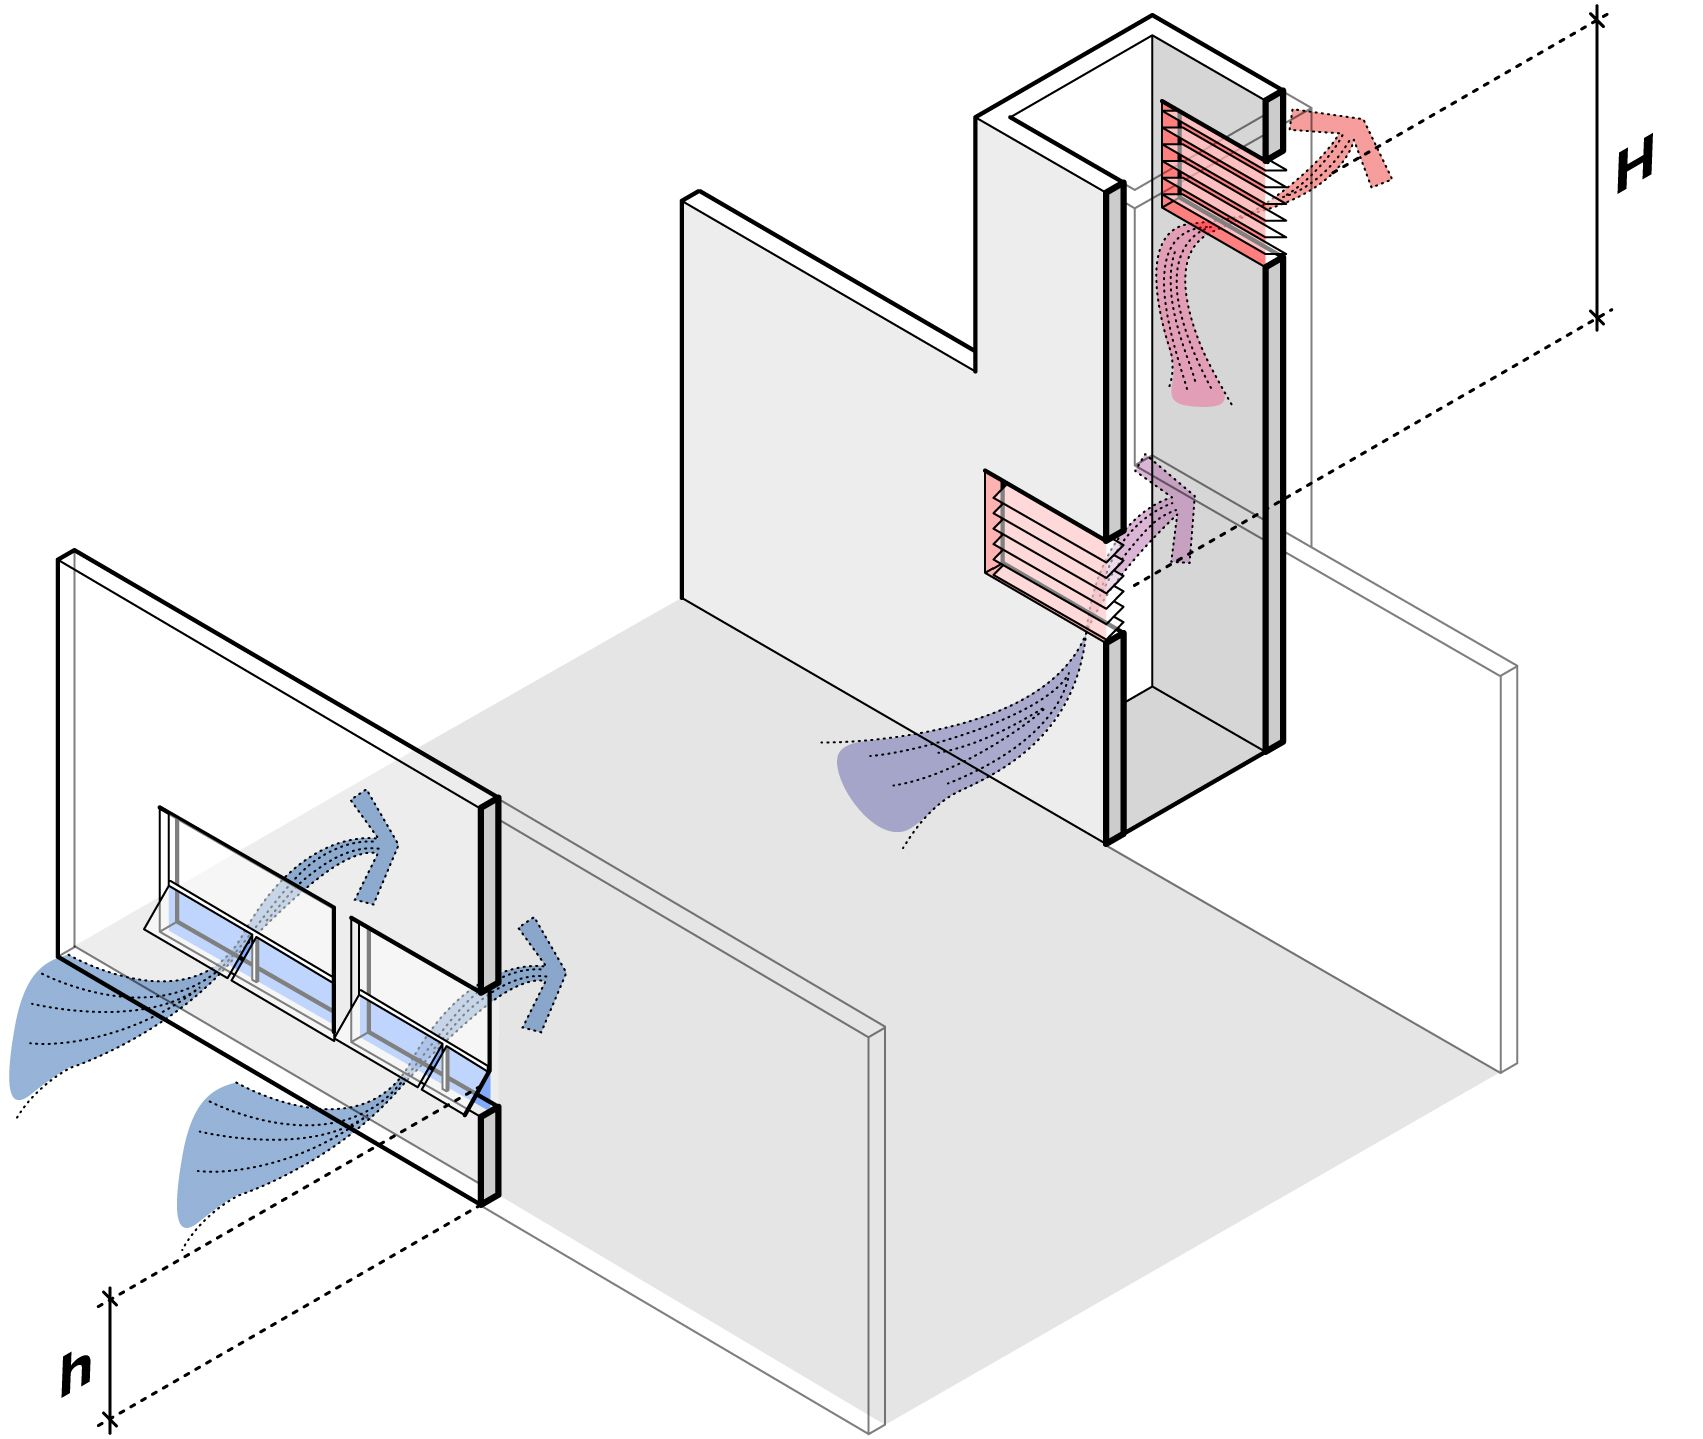 Stack Ventilation Diagram Outlet Locations Architecture